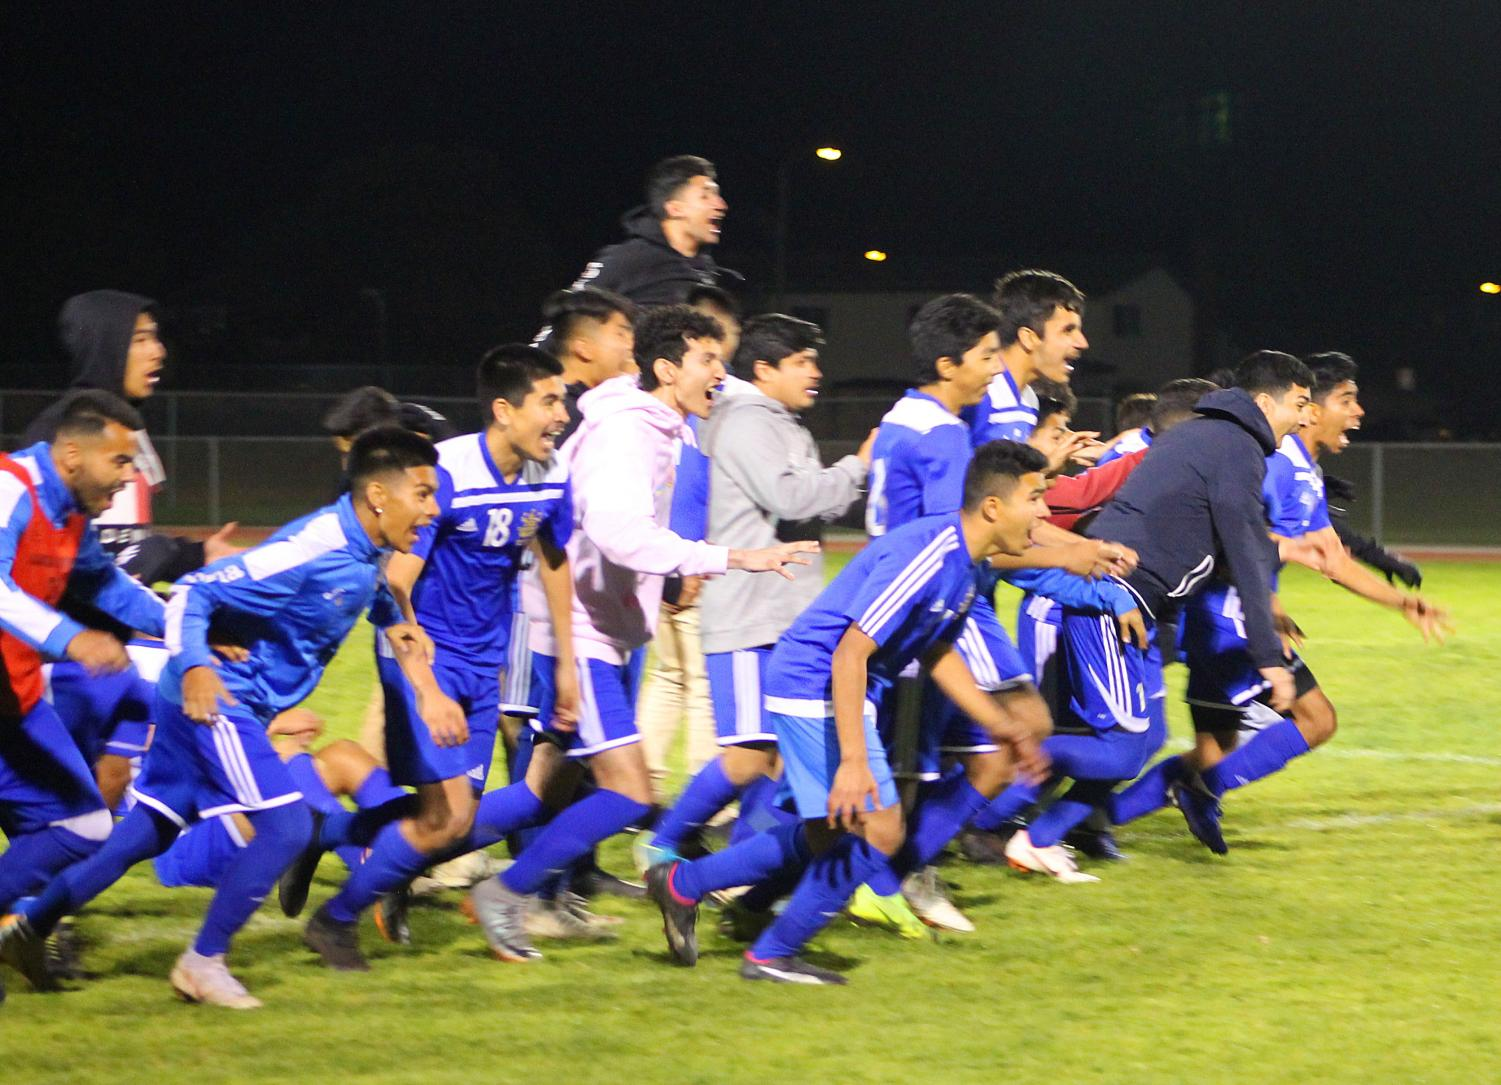 Raiders storm the field after defeating Camarillo in penalty kicks, 4-3, in the first-round CIF game